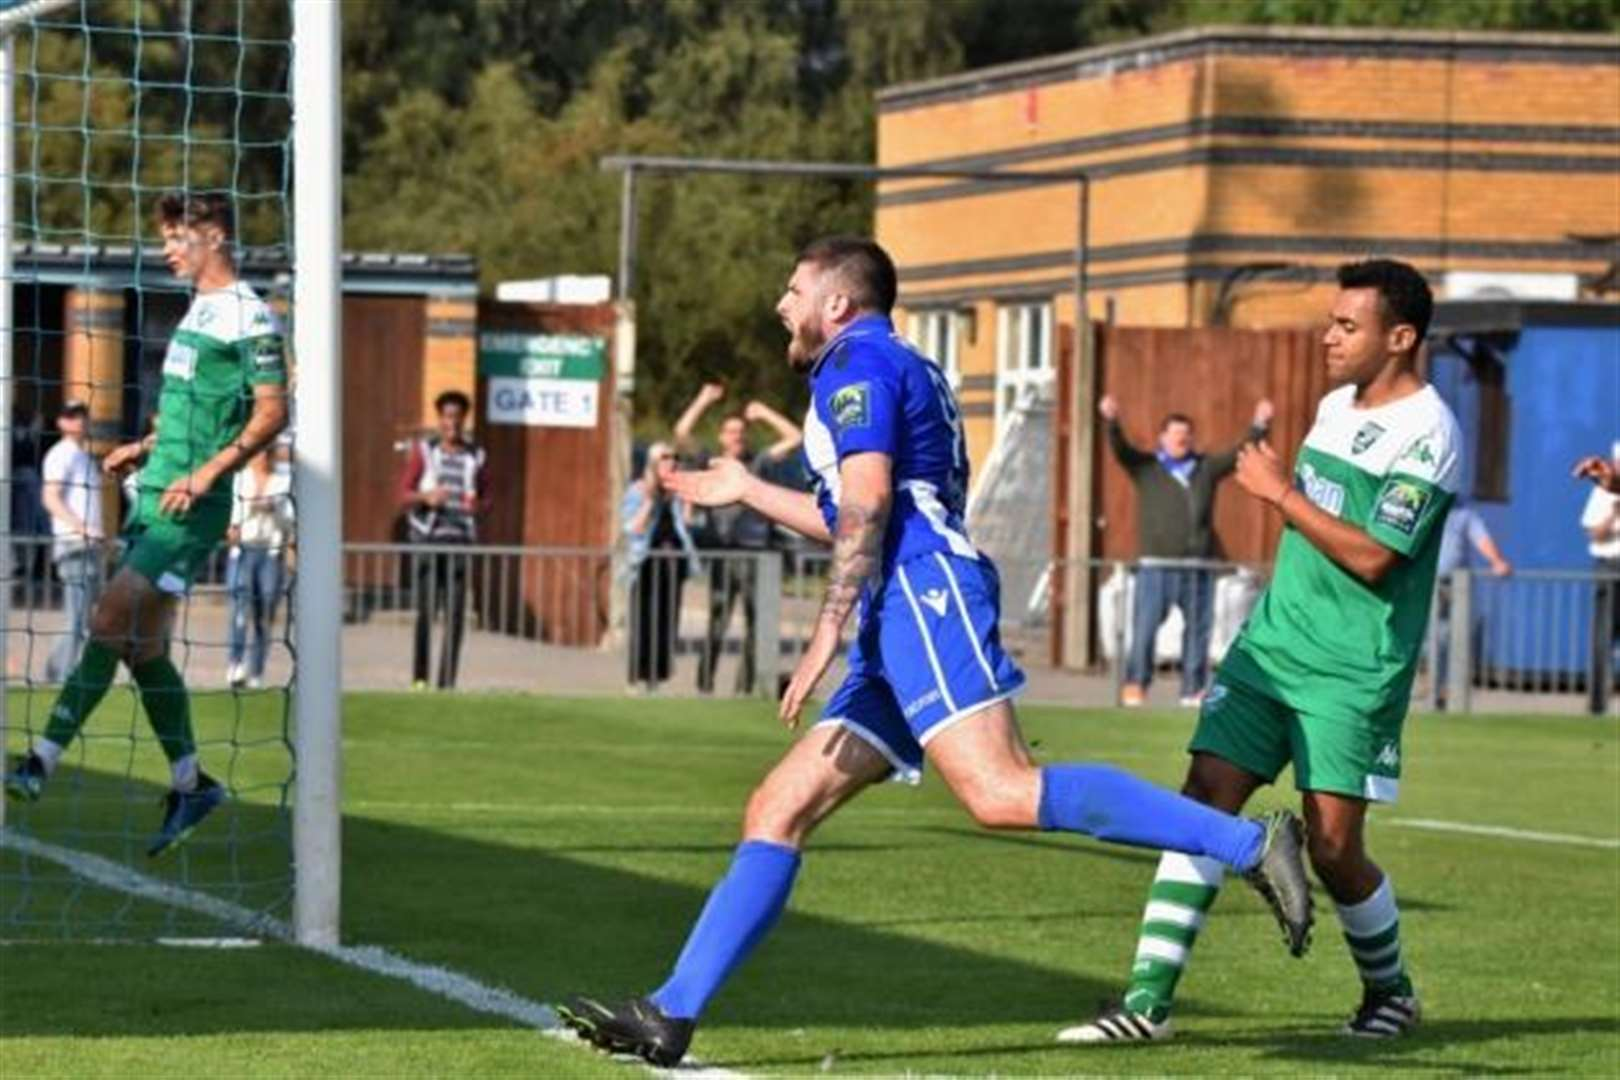 Blues aim to Stik it to Harlow in bank holiday derby